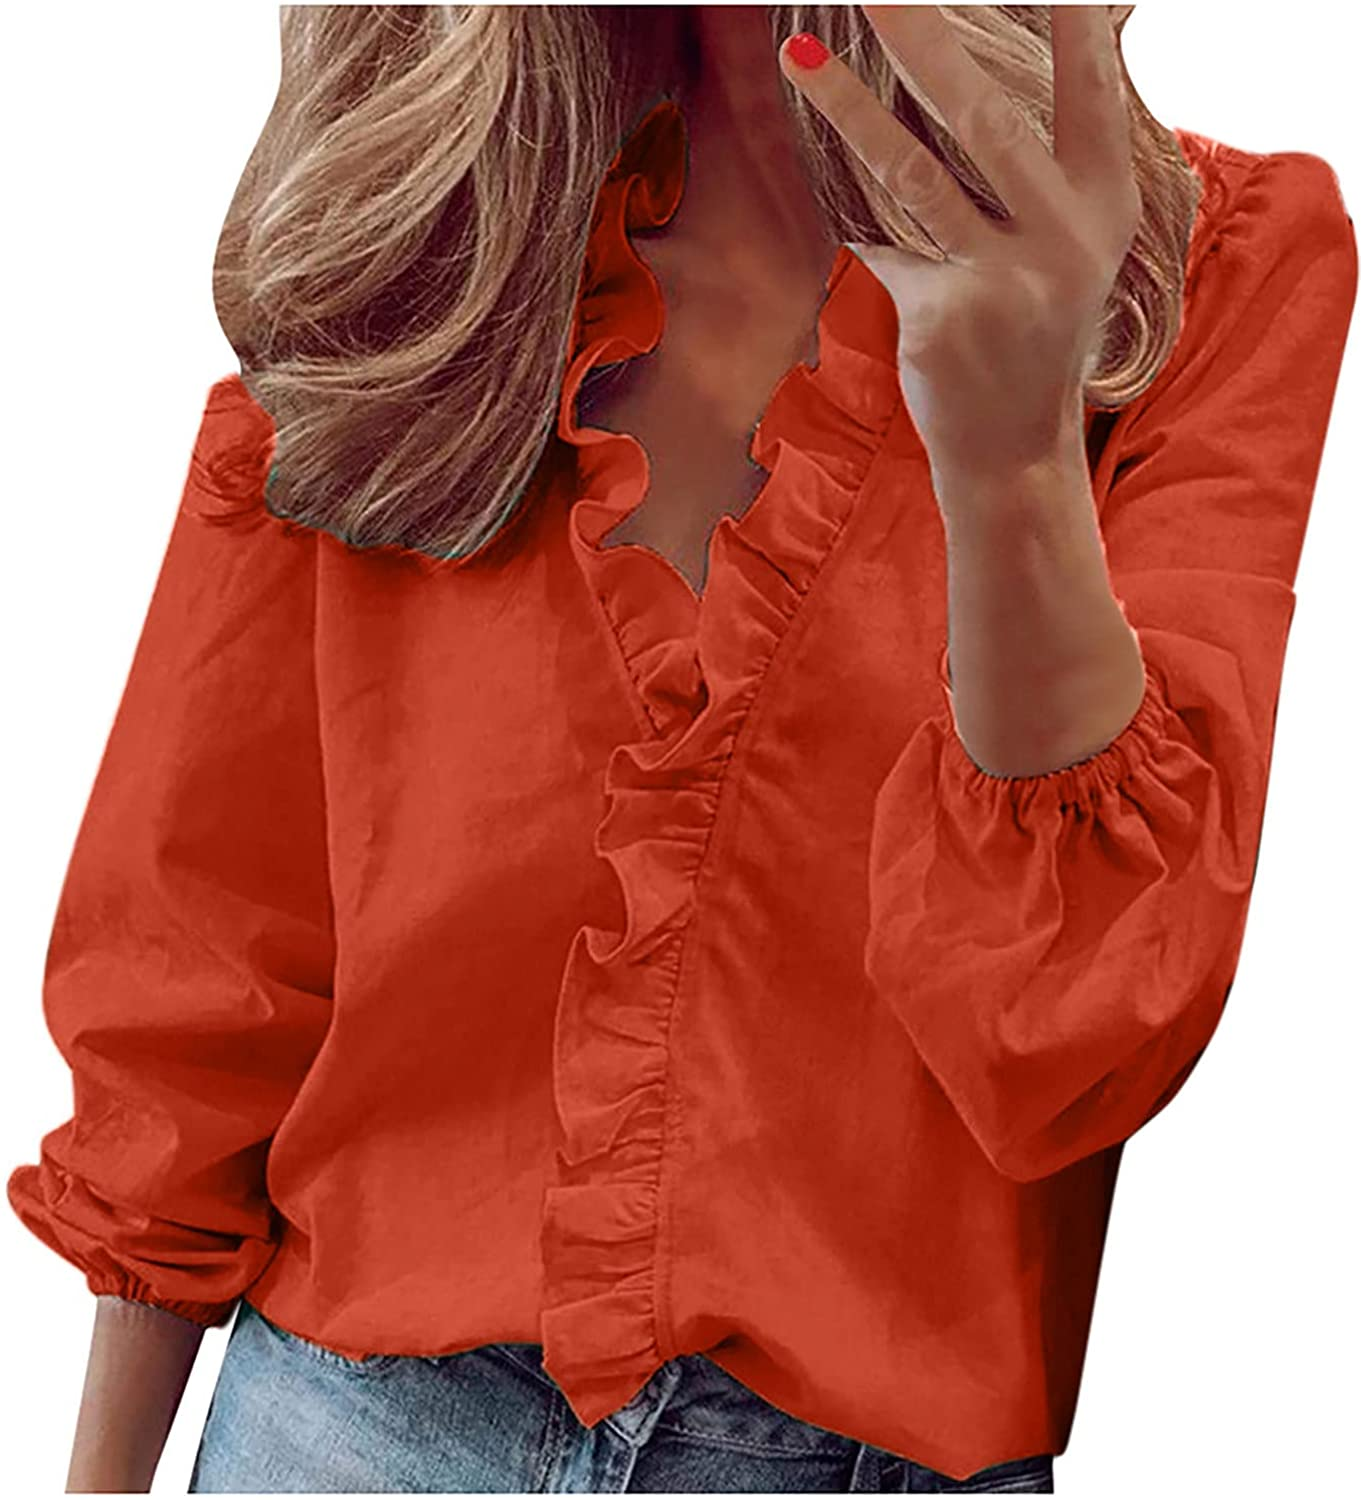 Blouses for Women Plus Size Shirt Casual Ruffled Full Sleeve Tops Solid V Neck Tunic Ladies Summer Loose Pullover Tops